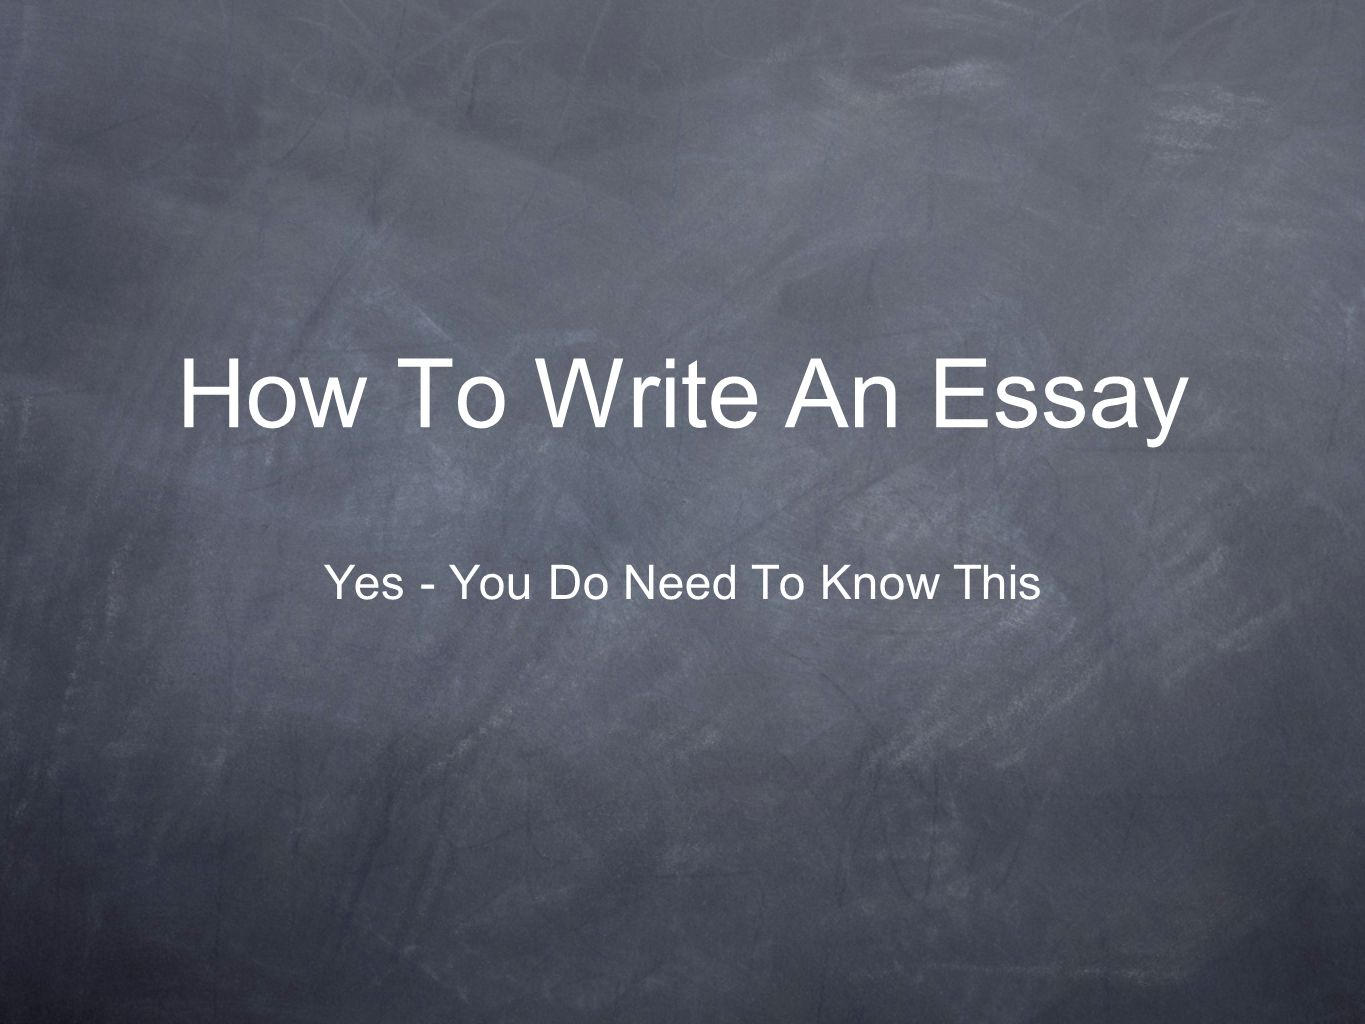 Importance What you have to say is ultimately more important then how the essay looks on the surface.